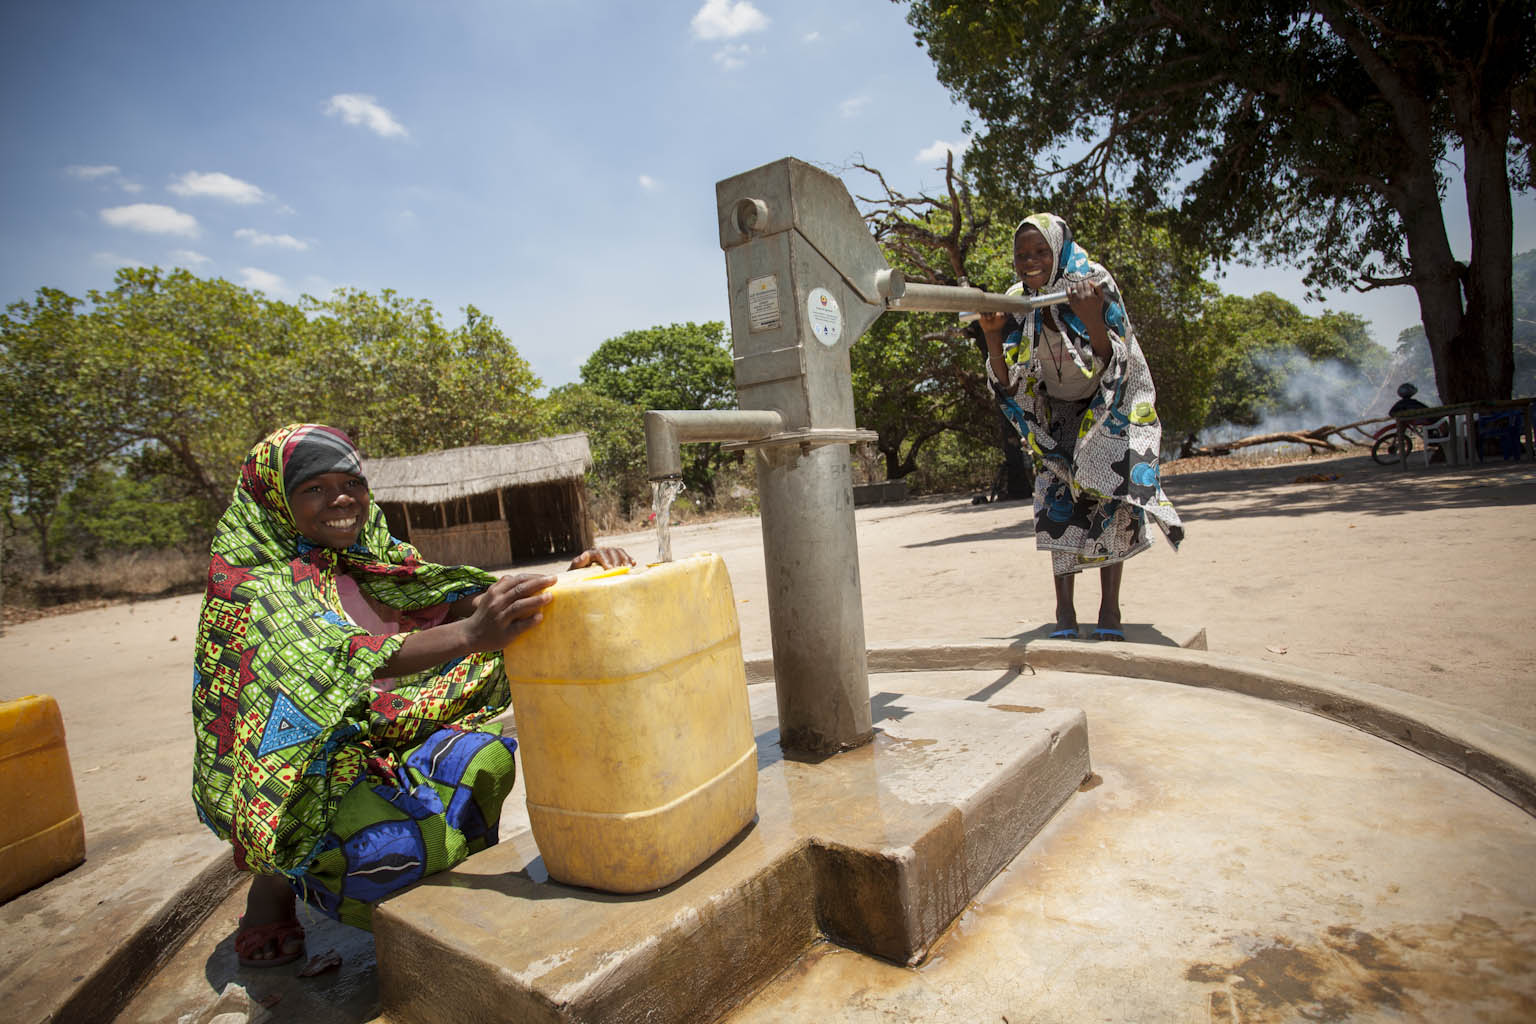 Girls in a village in Mozambique pump fresh water thanks to a hand-powered water pump funded through MCC's Compact.